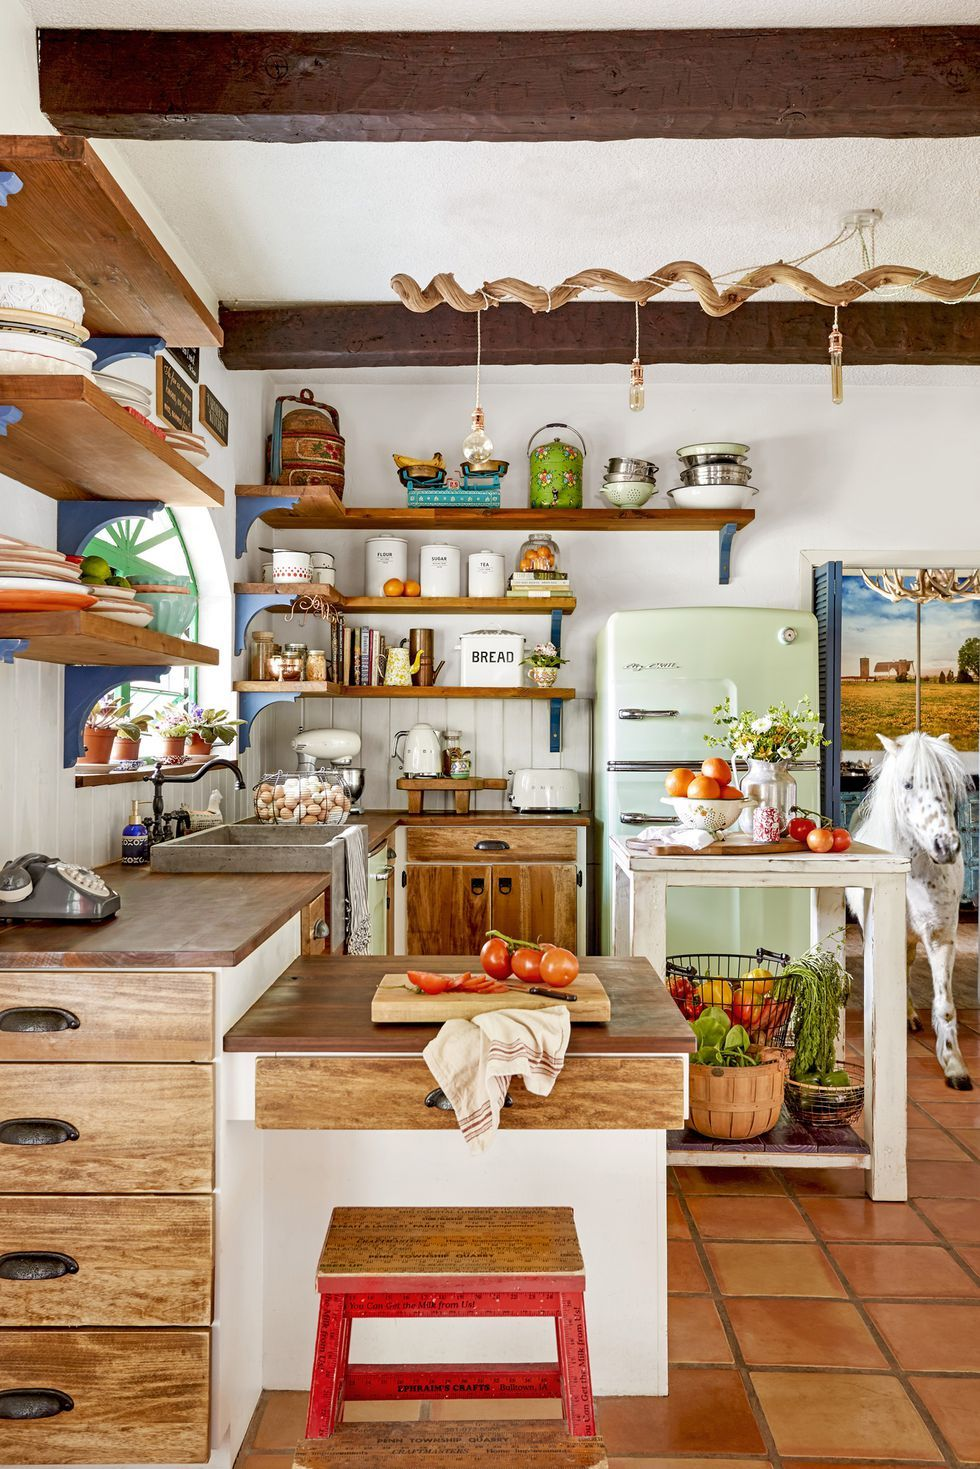 House Kitchen Interior Design Pictures 100 Kitchen Design Ideas Pictures Of Country Kitchen Decorating